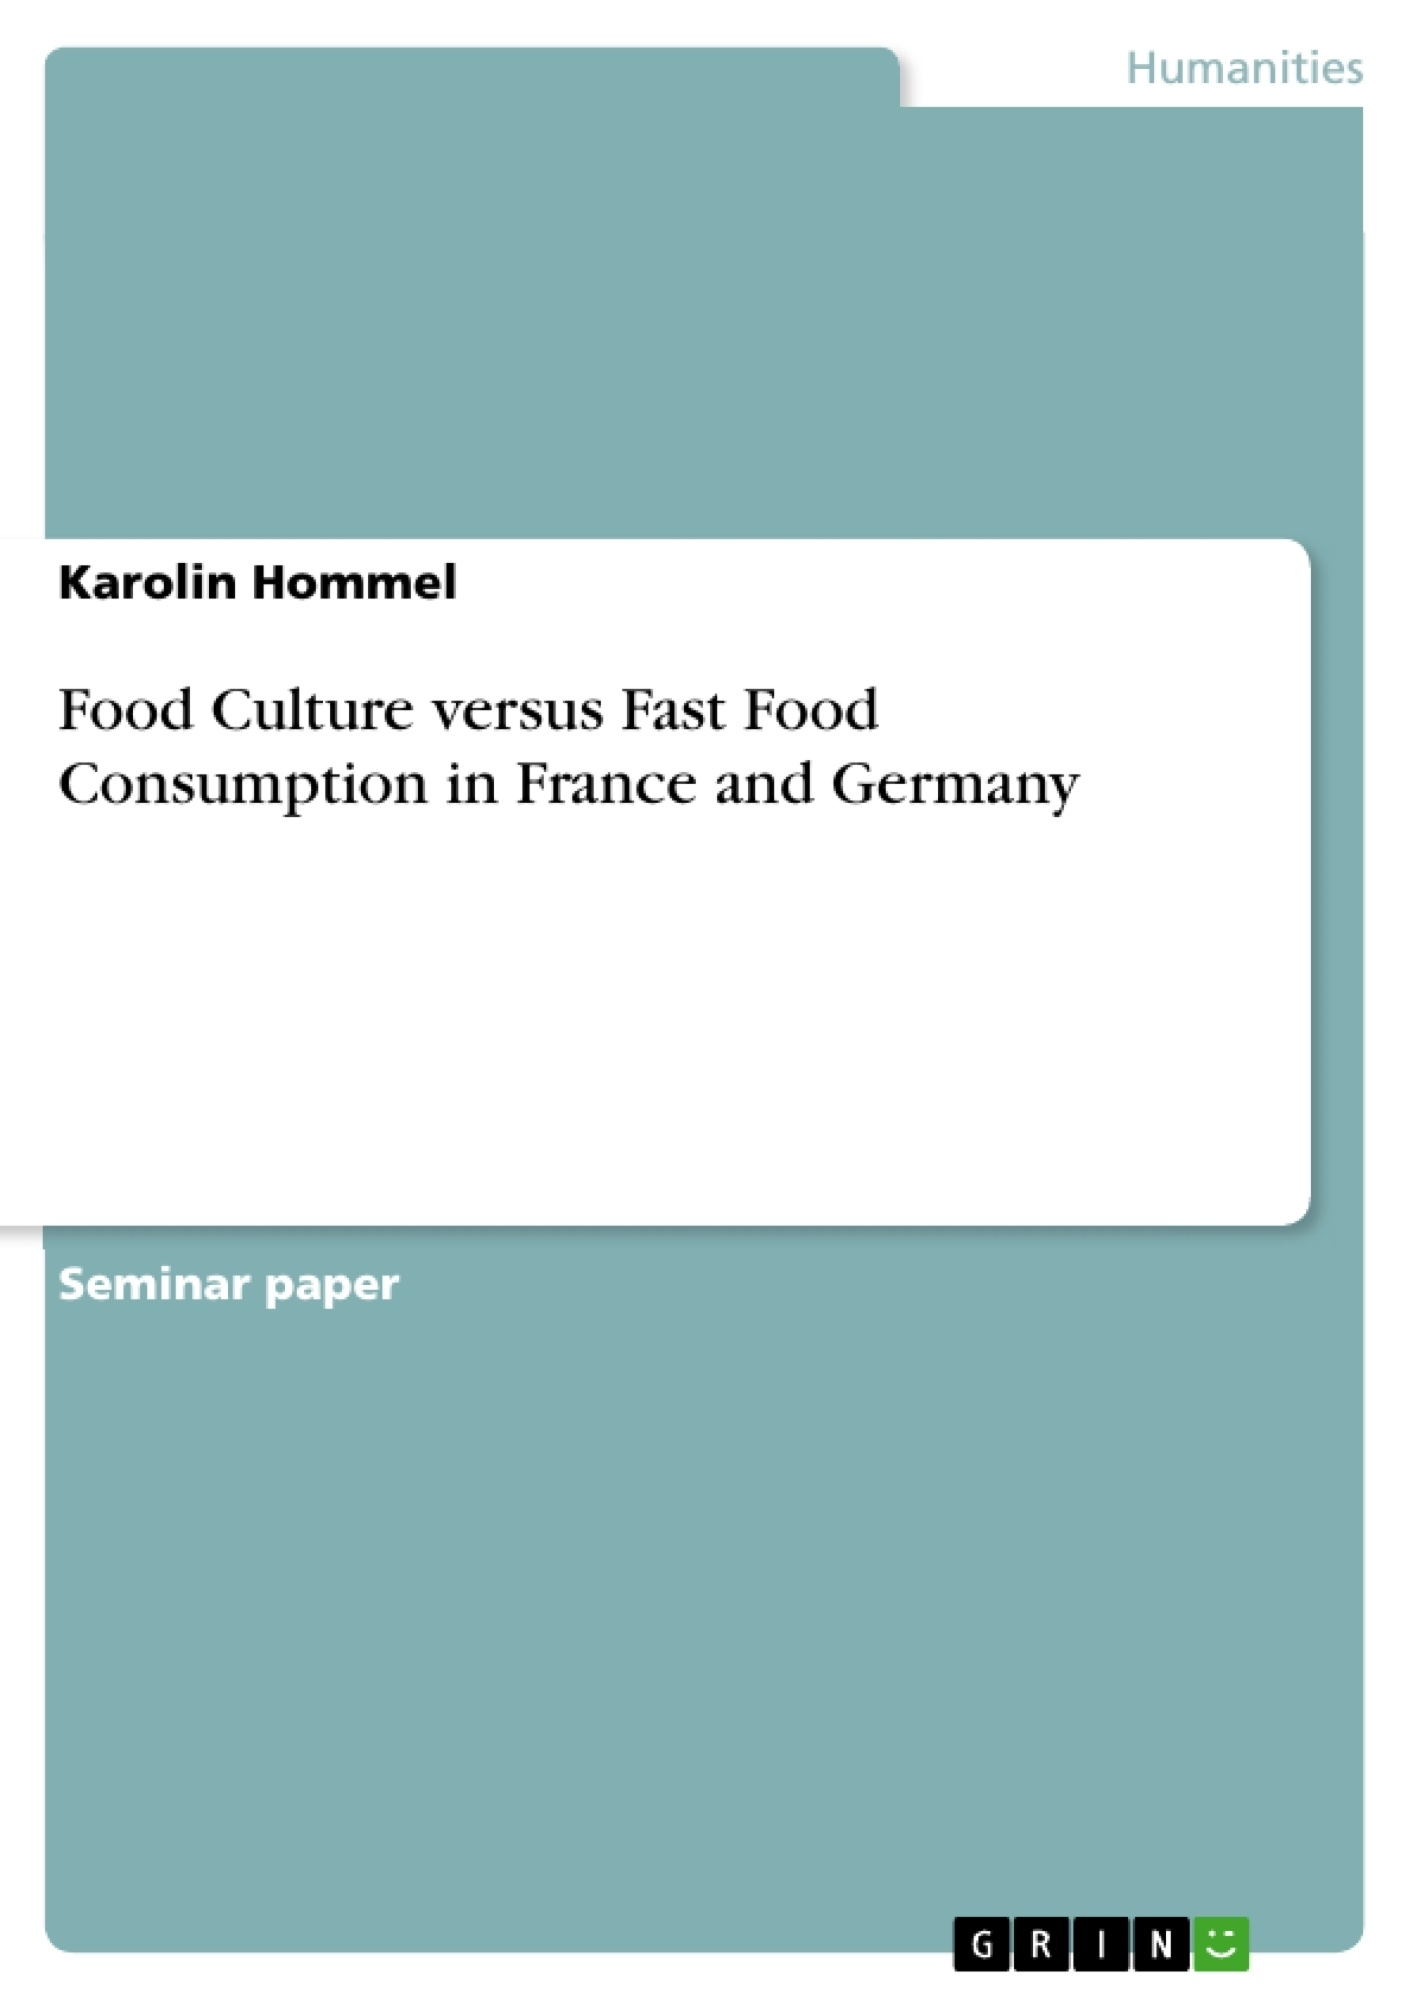 Title: Food Culture versus Fast Food Consumption in France and Germany